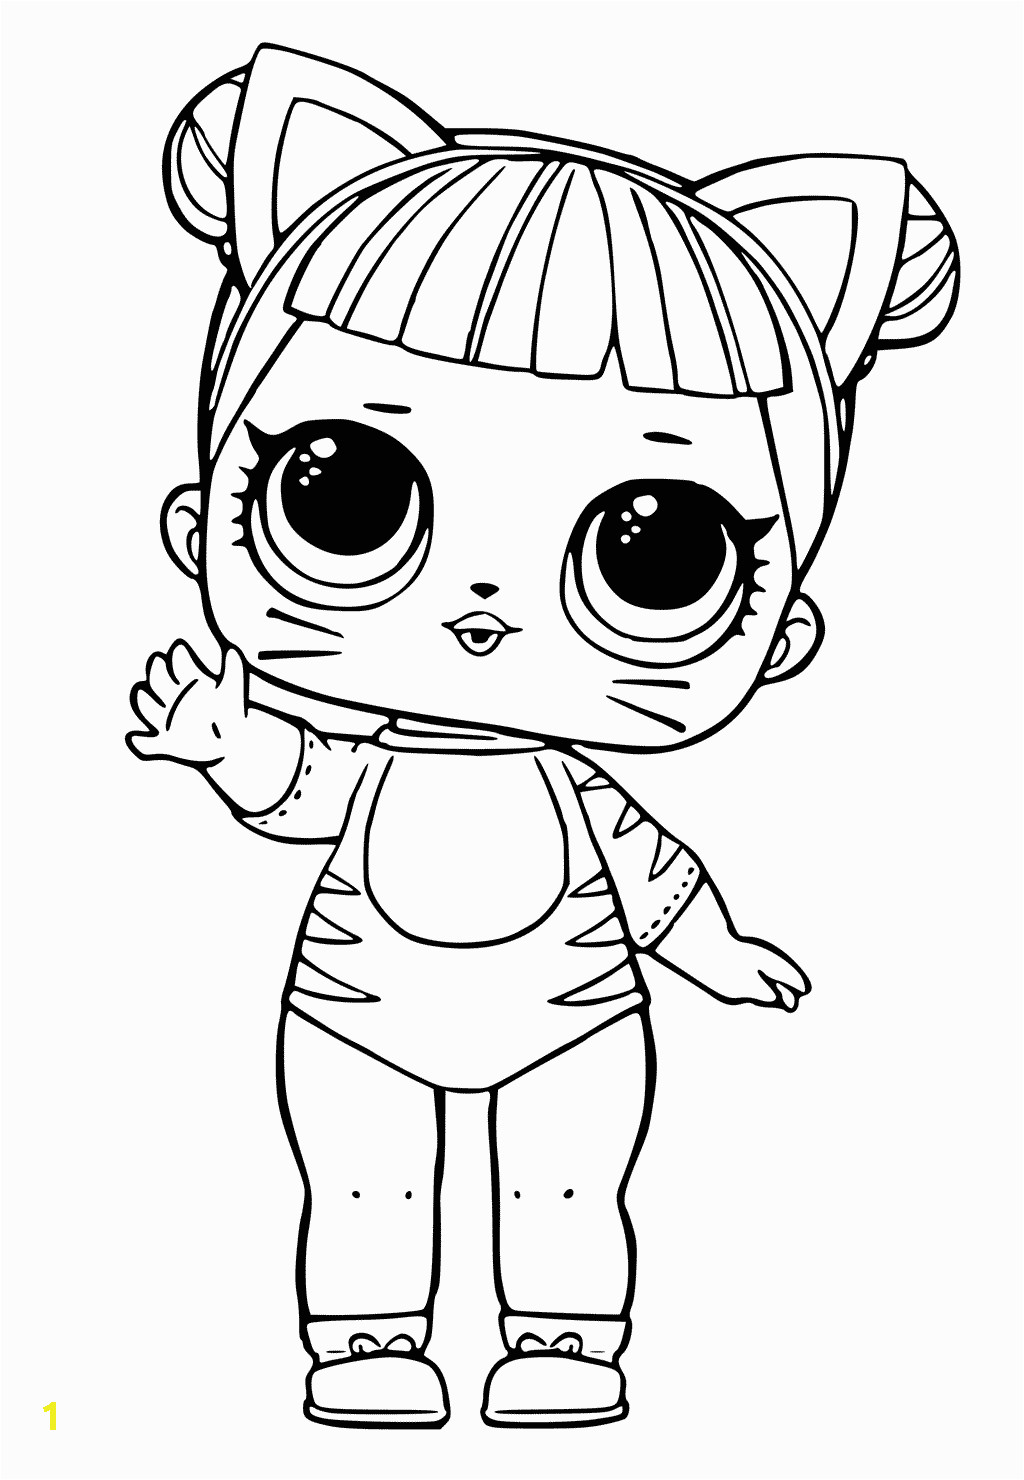 Baby Cat Lol Doll Coloring Page Lol Doll Coloring Pages